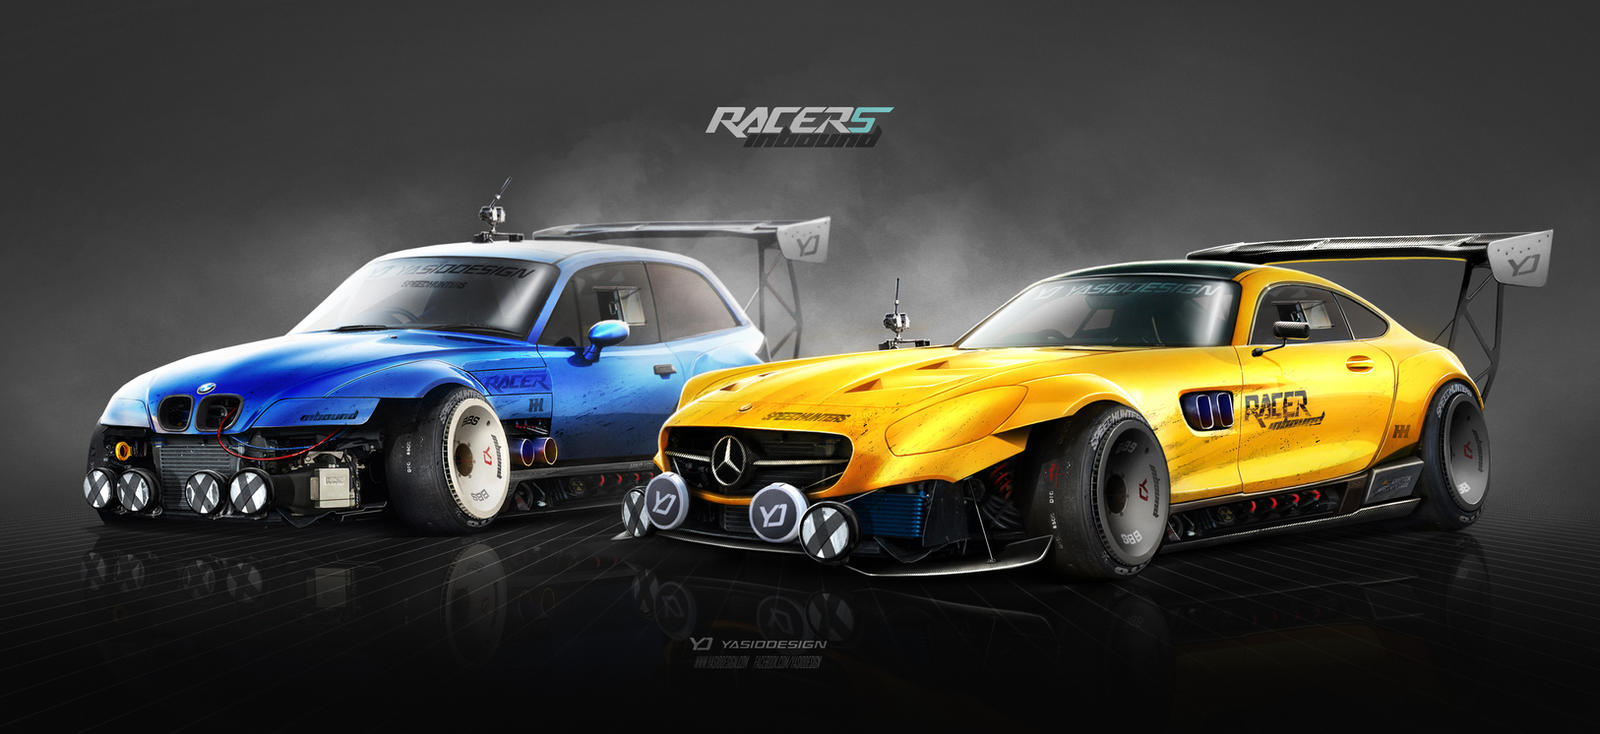 Mercedes Amg Gt S Vs Bmw Z3m Inbound Racer By Yasiddesign On Deviantart